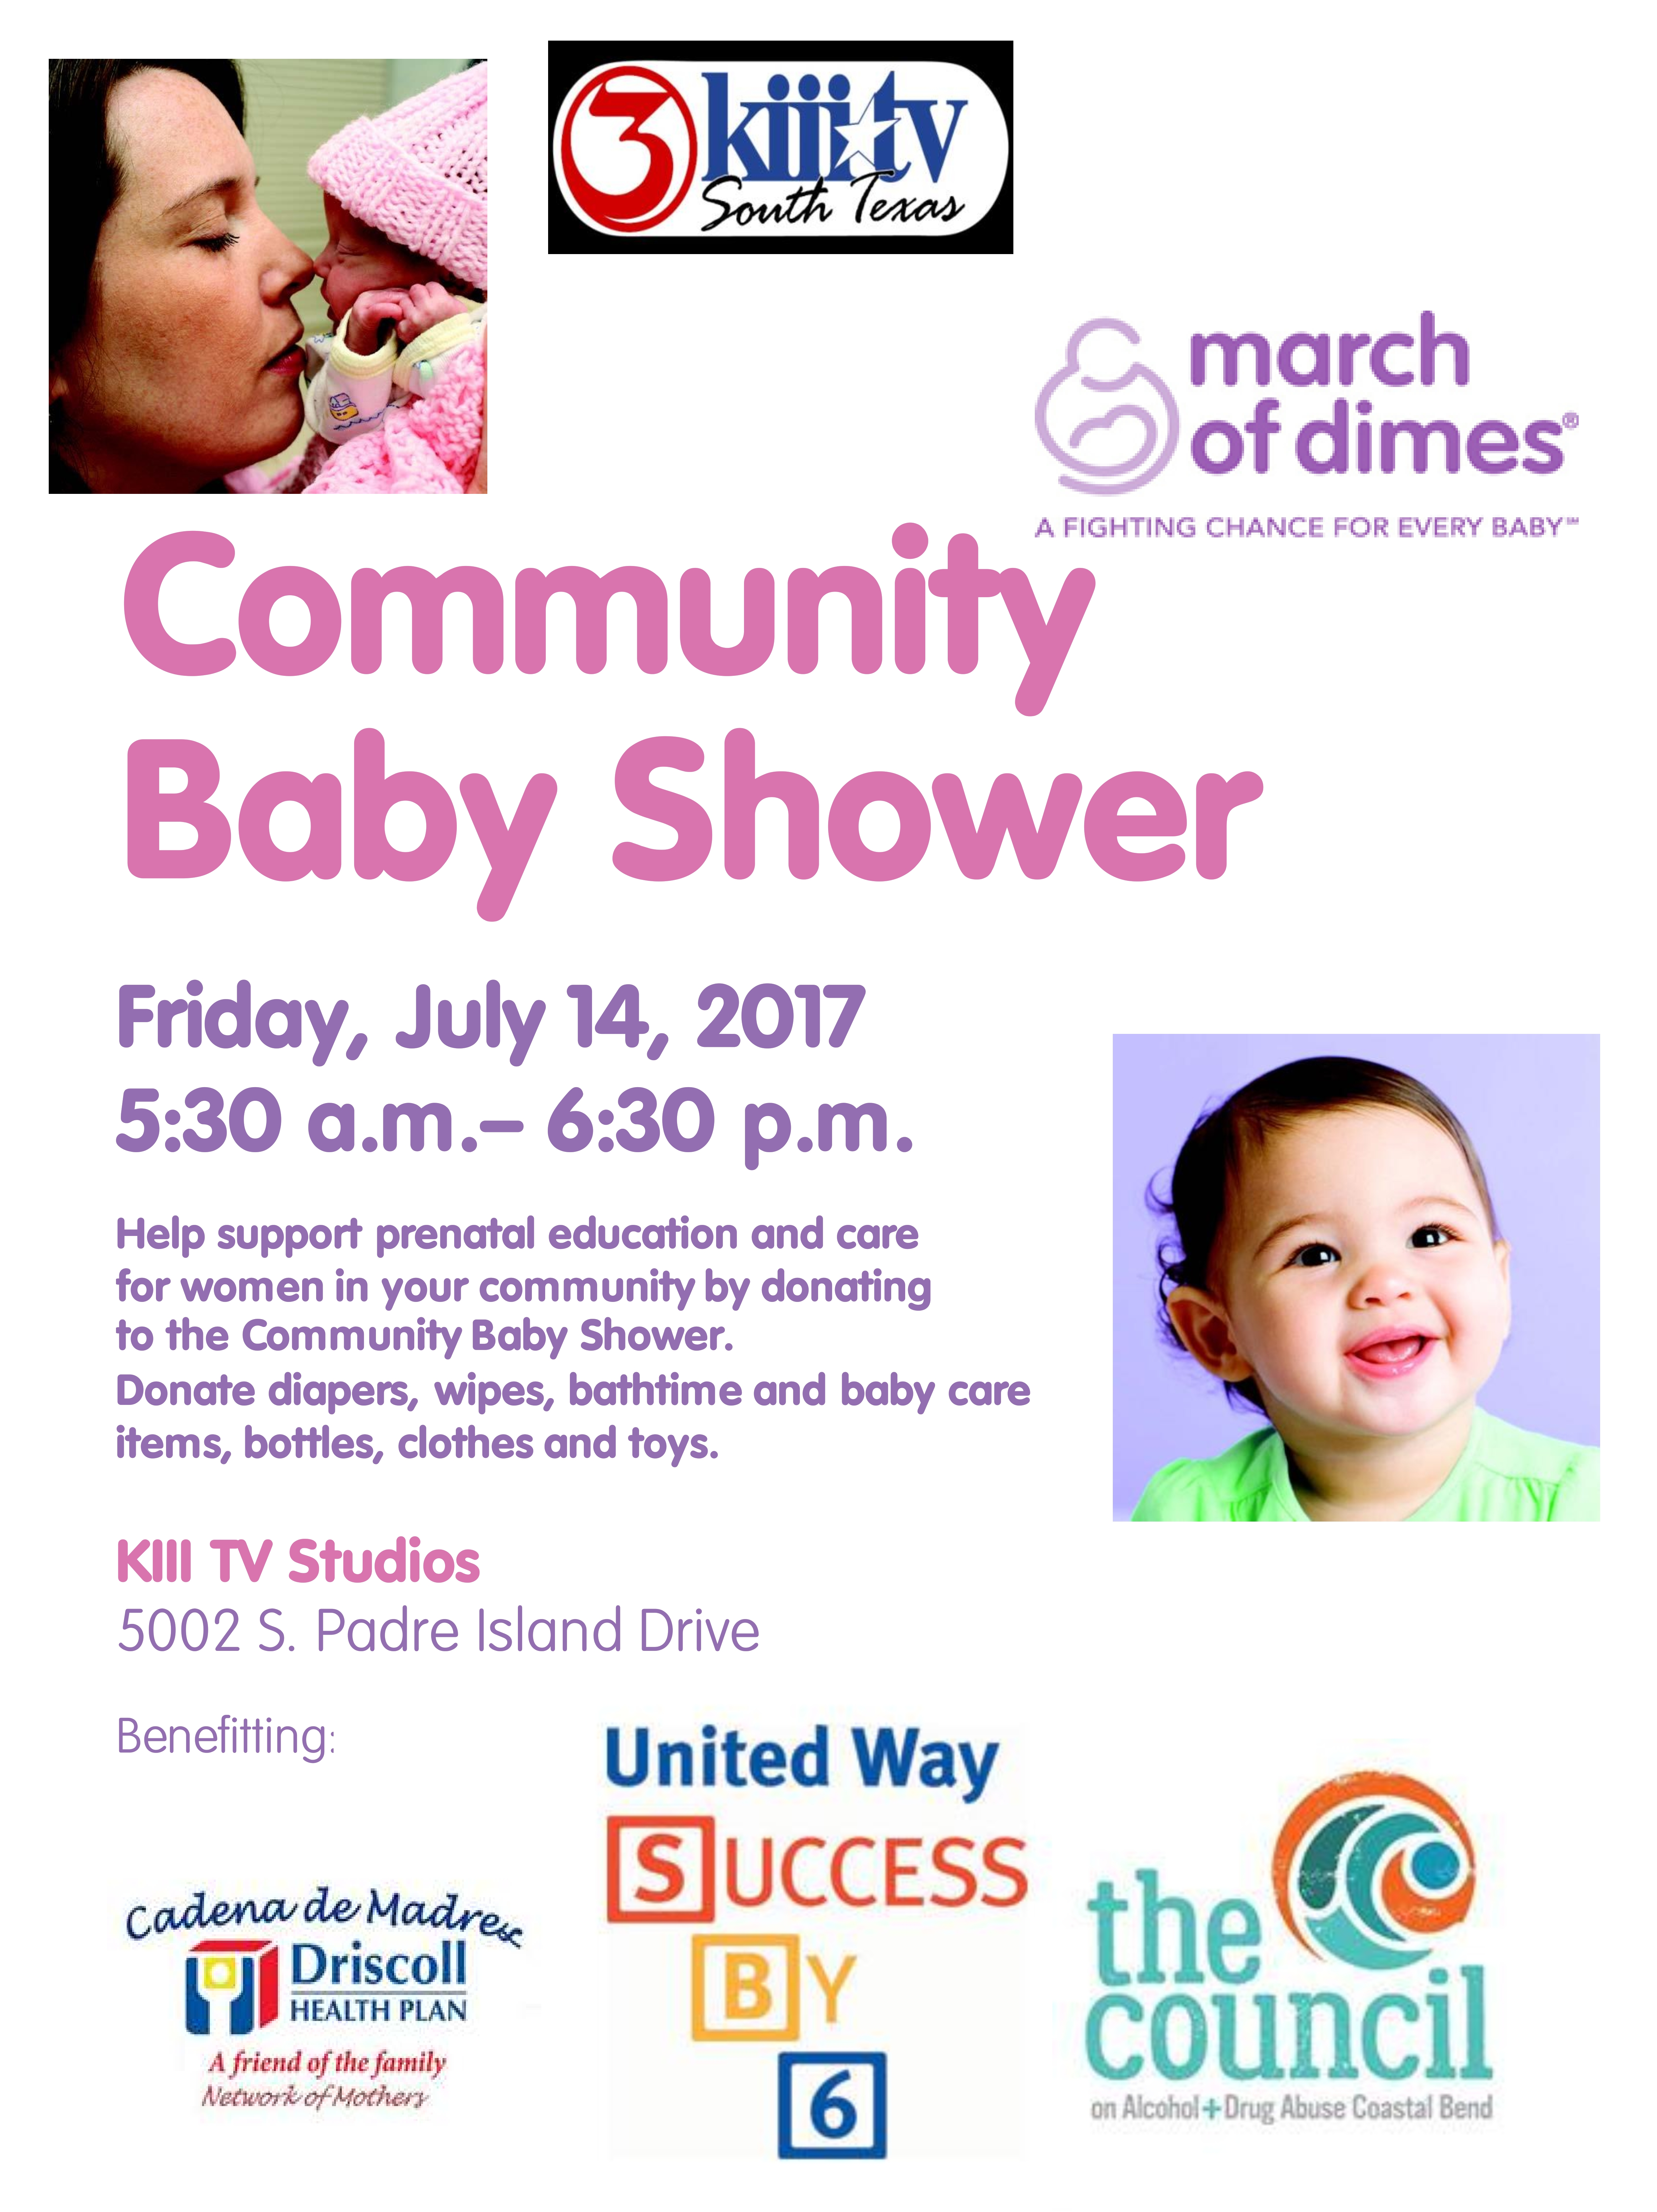 The Annual Community Baby Shower Is This Friday! Driscoll Health Plan (DHP)  And Its Partners Are Working To Help End Premature Births And Support  Prenatal ...